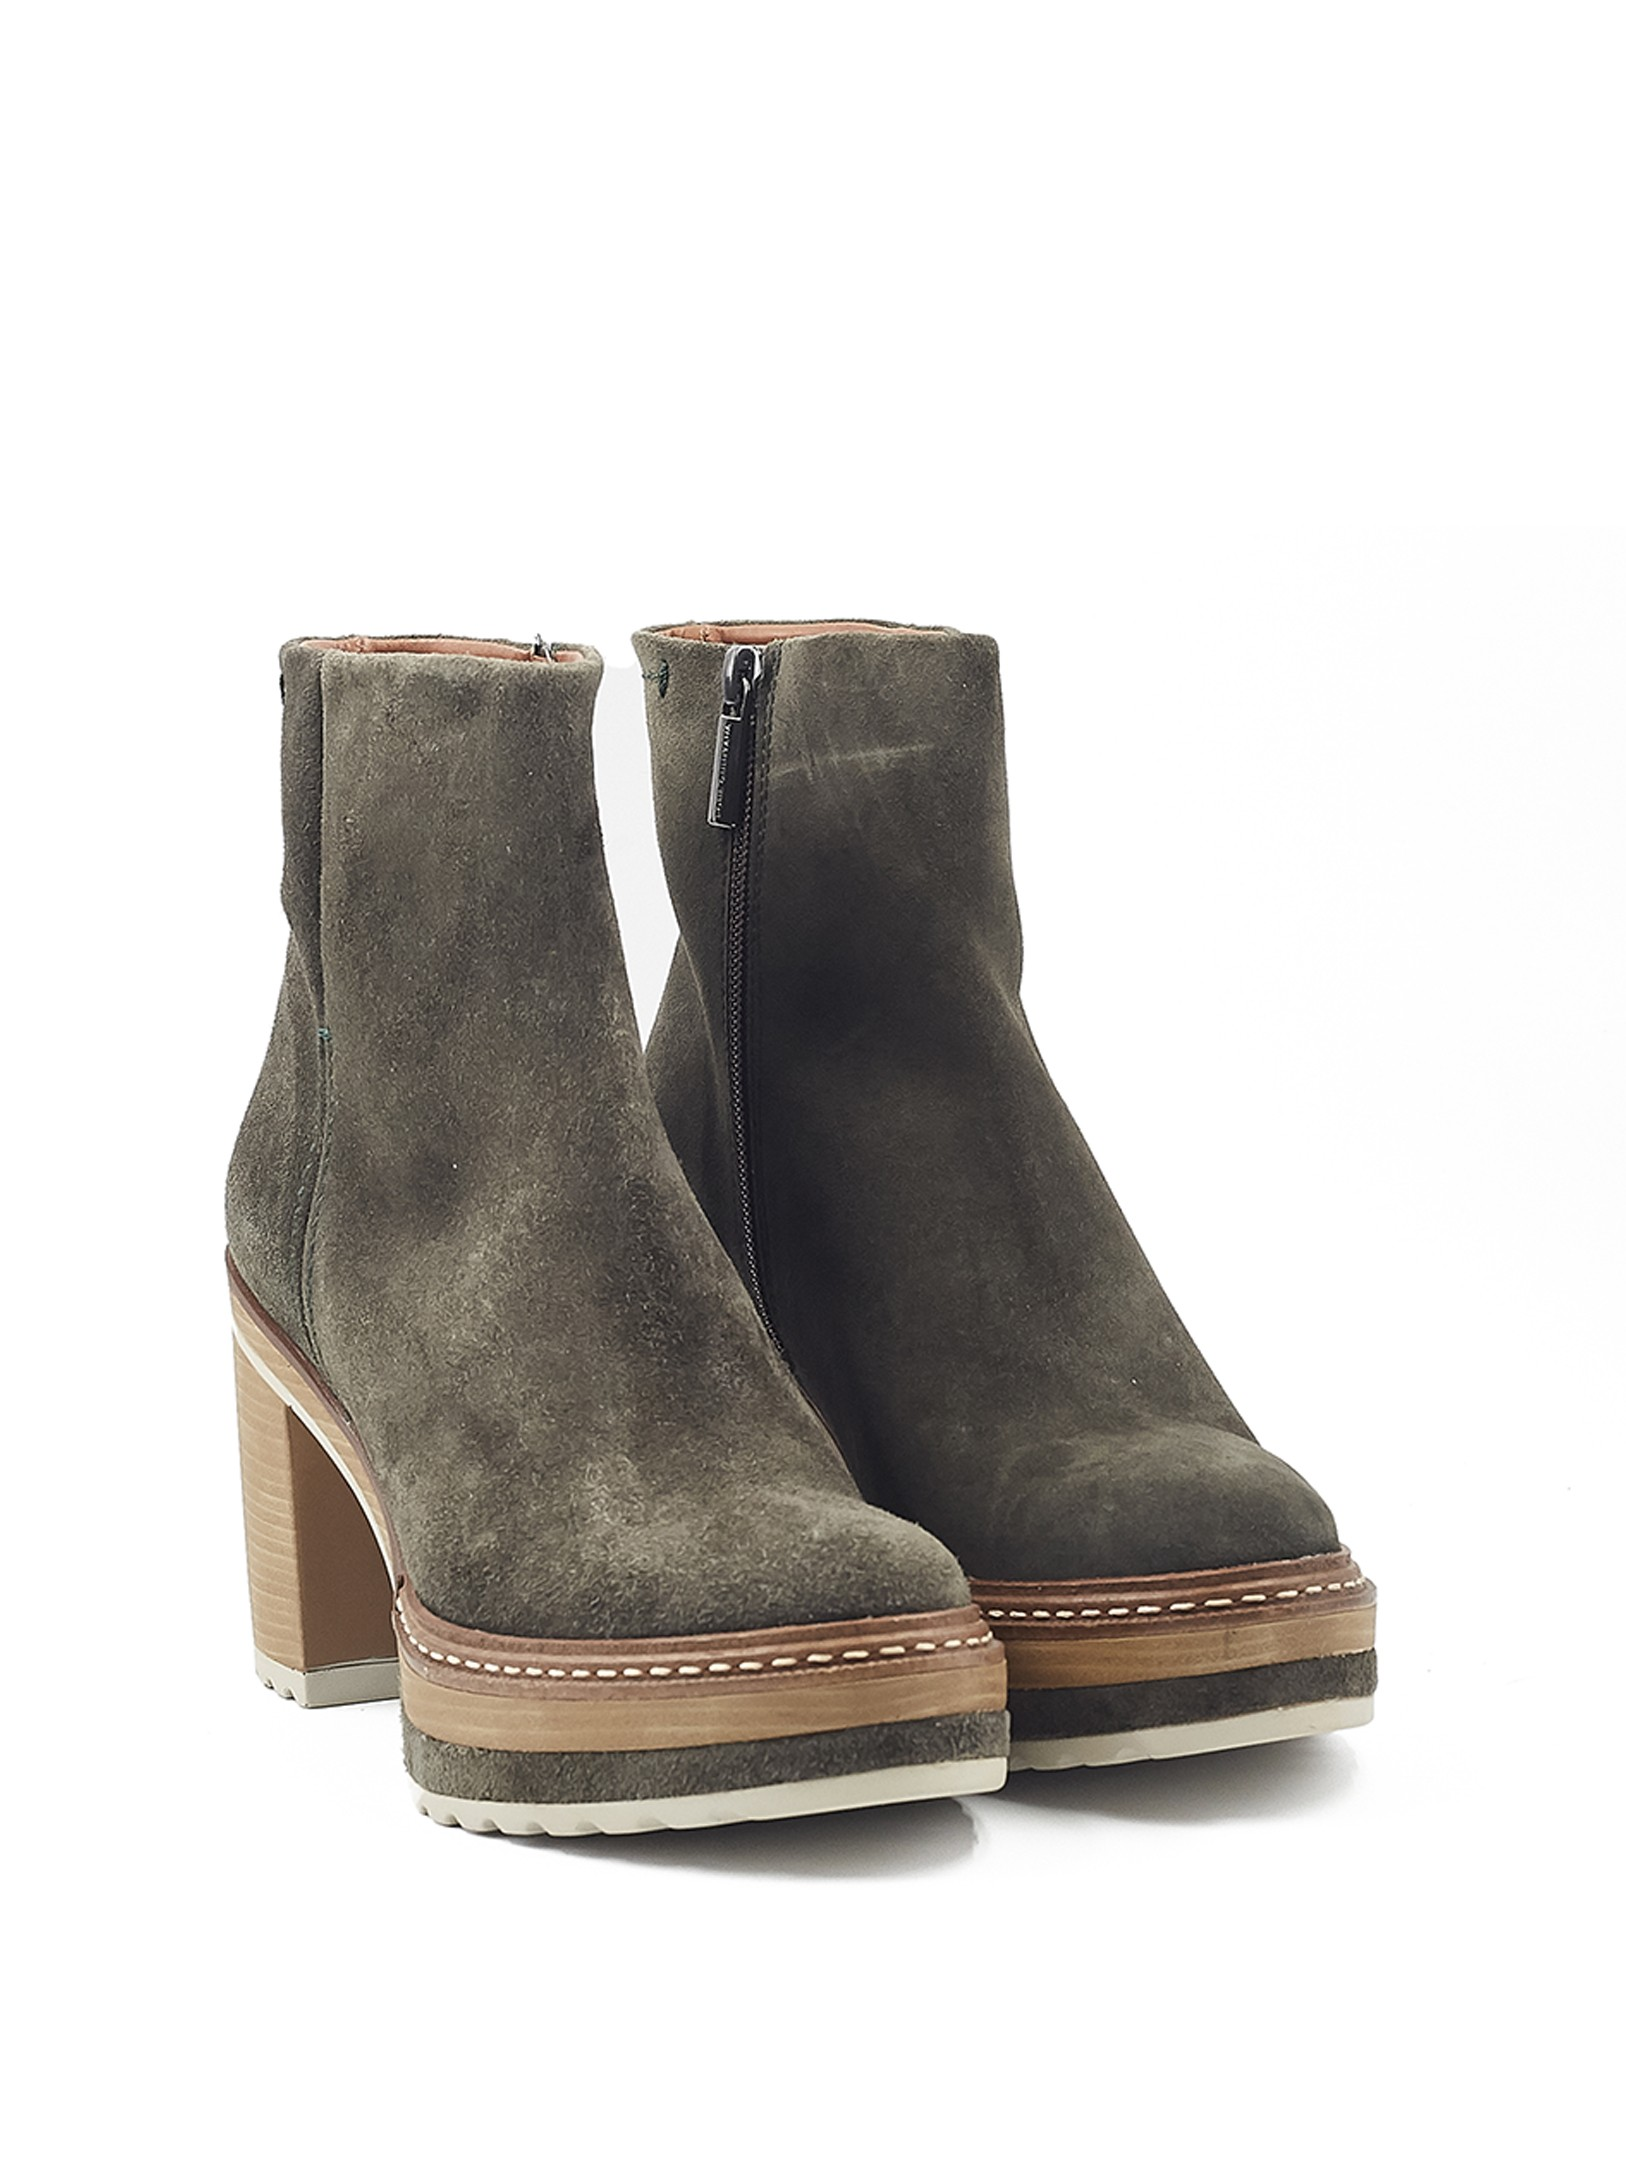 OLIVIA MOSS VELOUR ANKLE BOOT